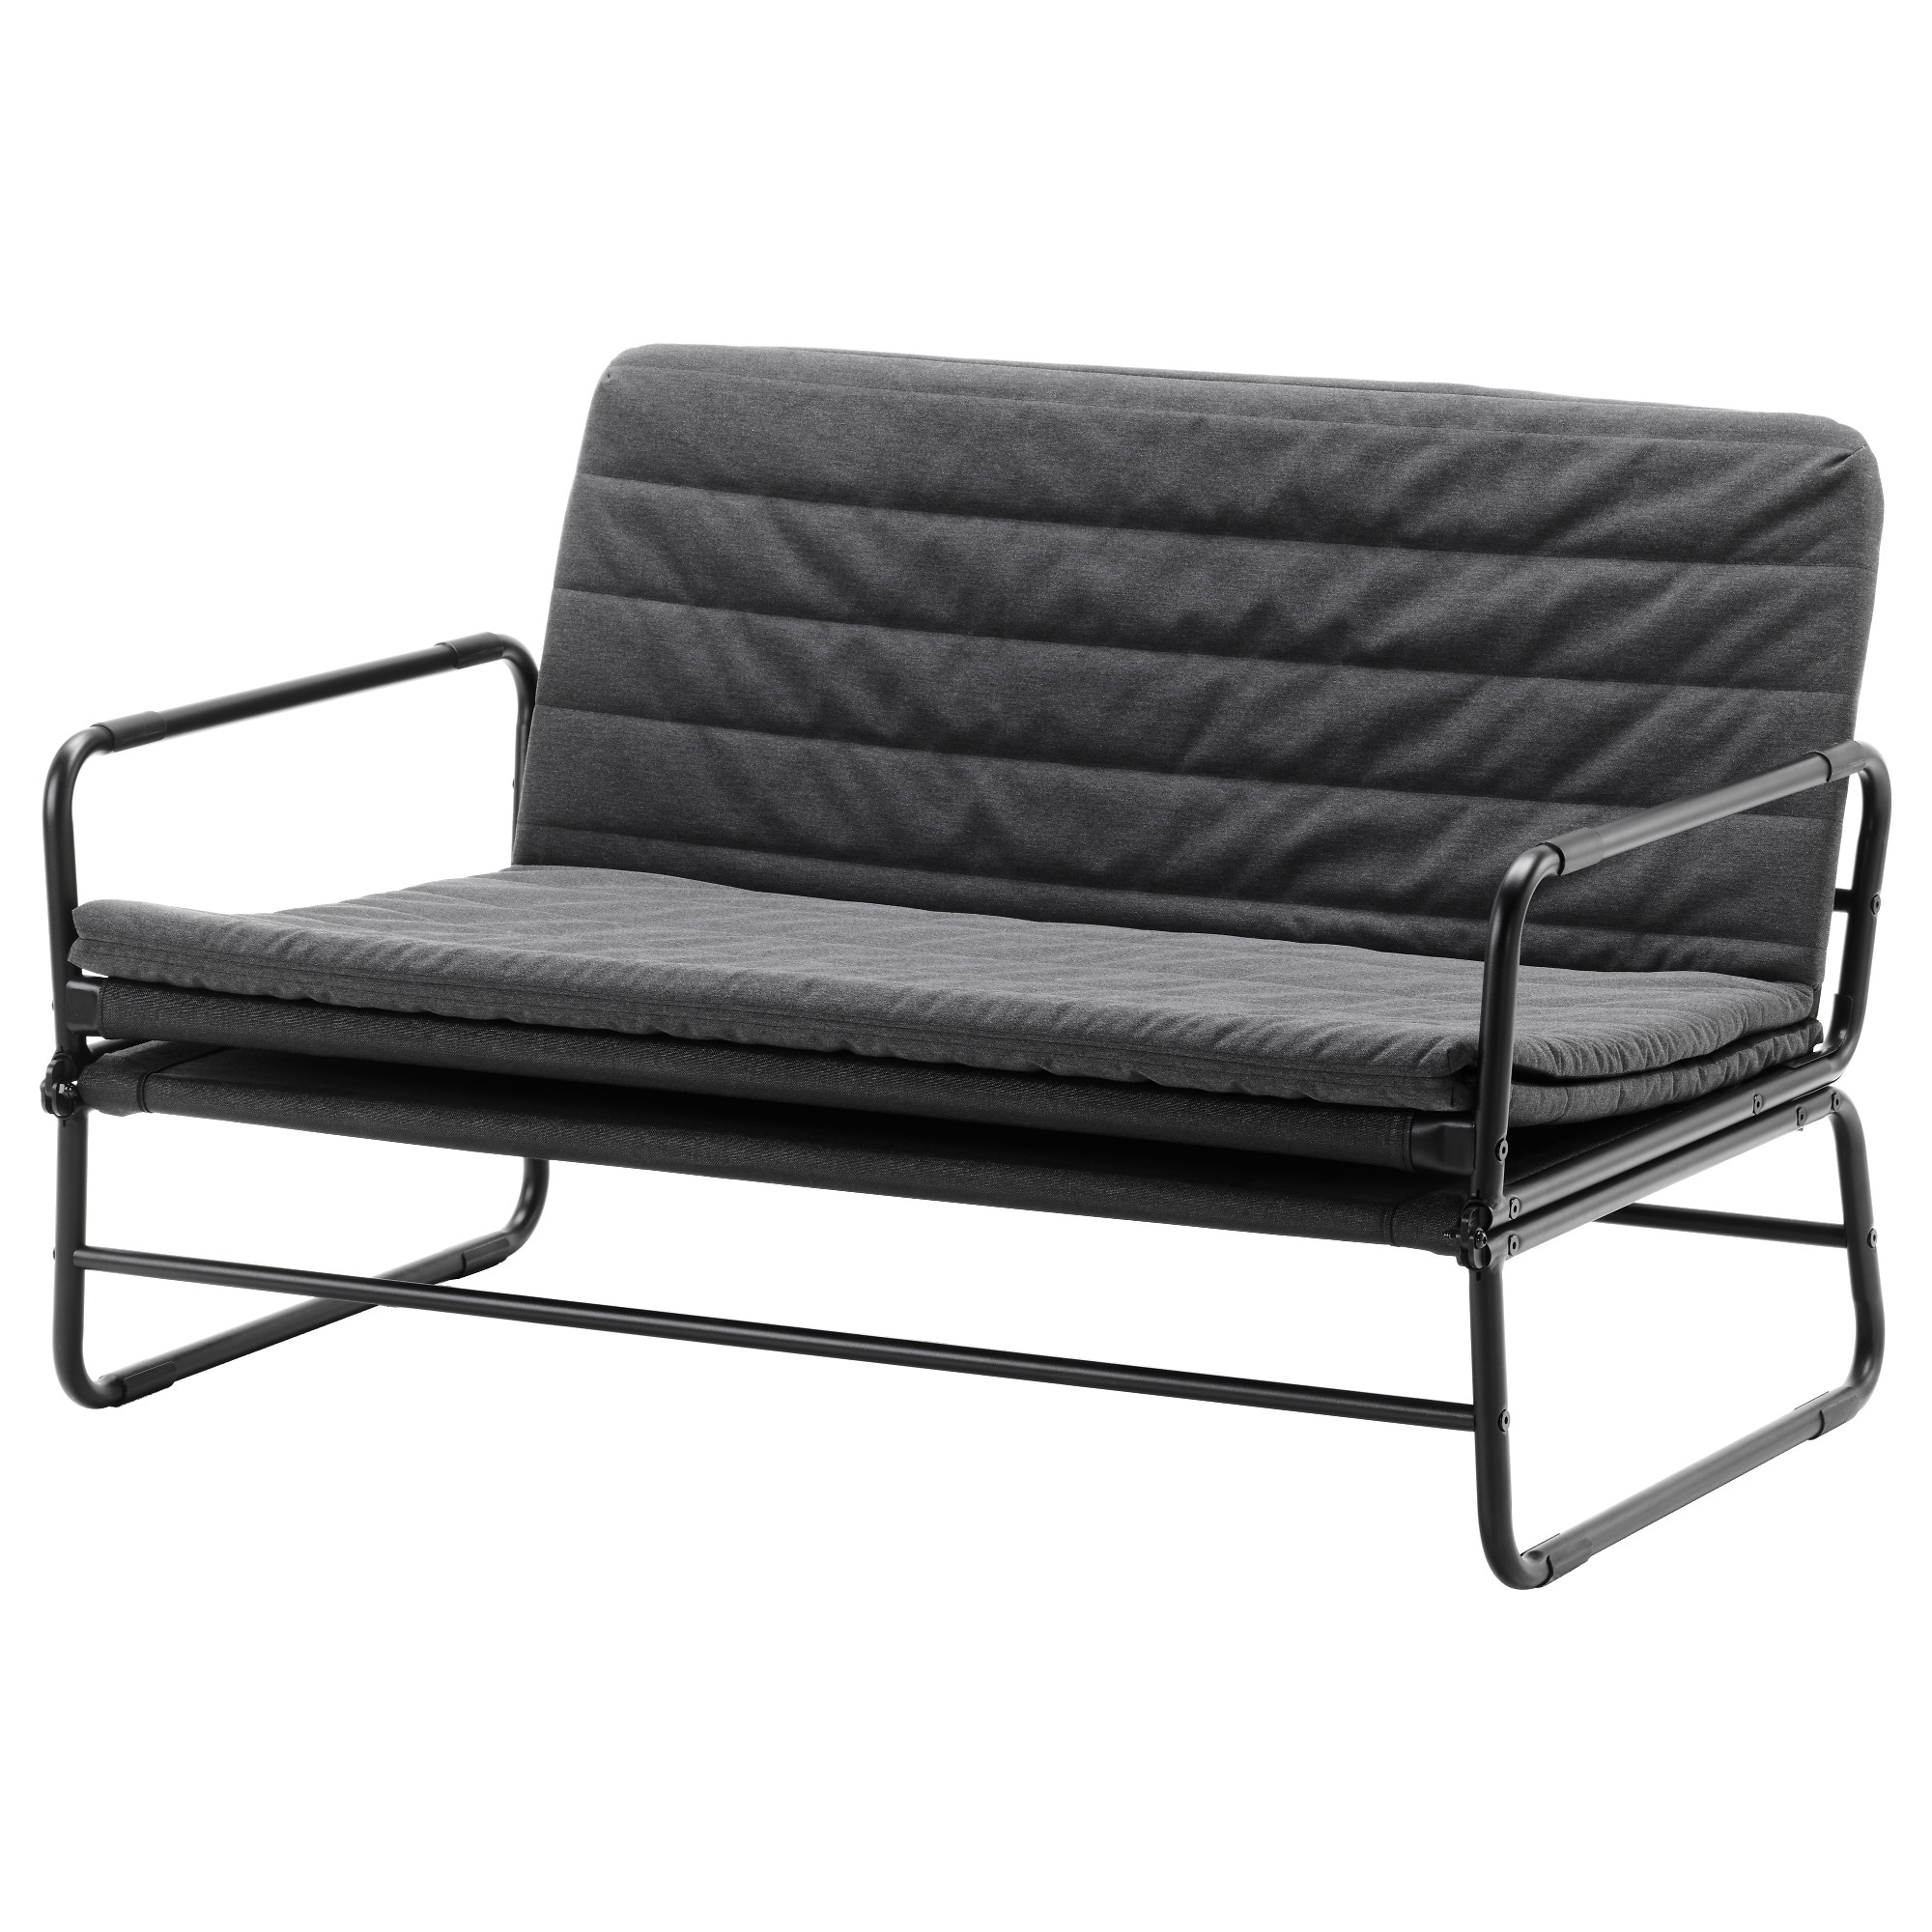 Souvent HAMMARN Convertible - IKEA GC68